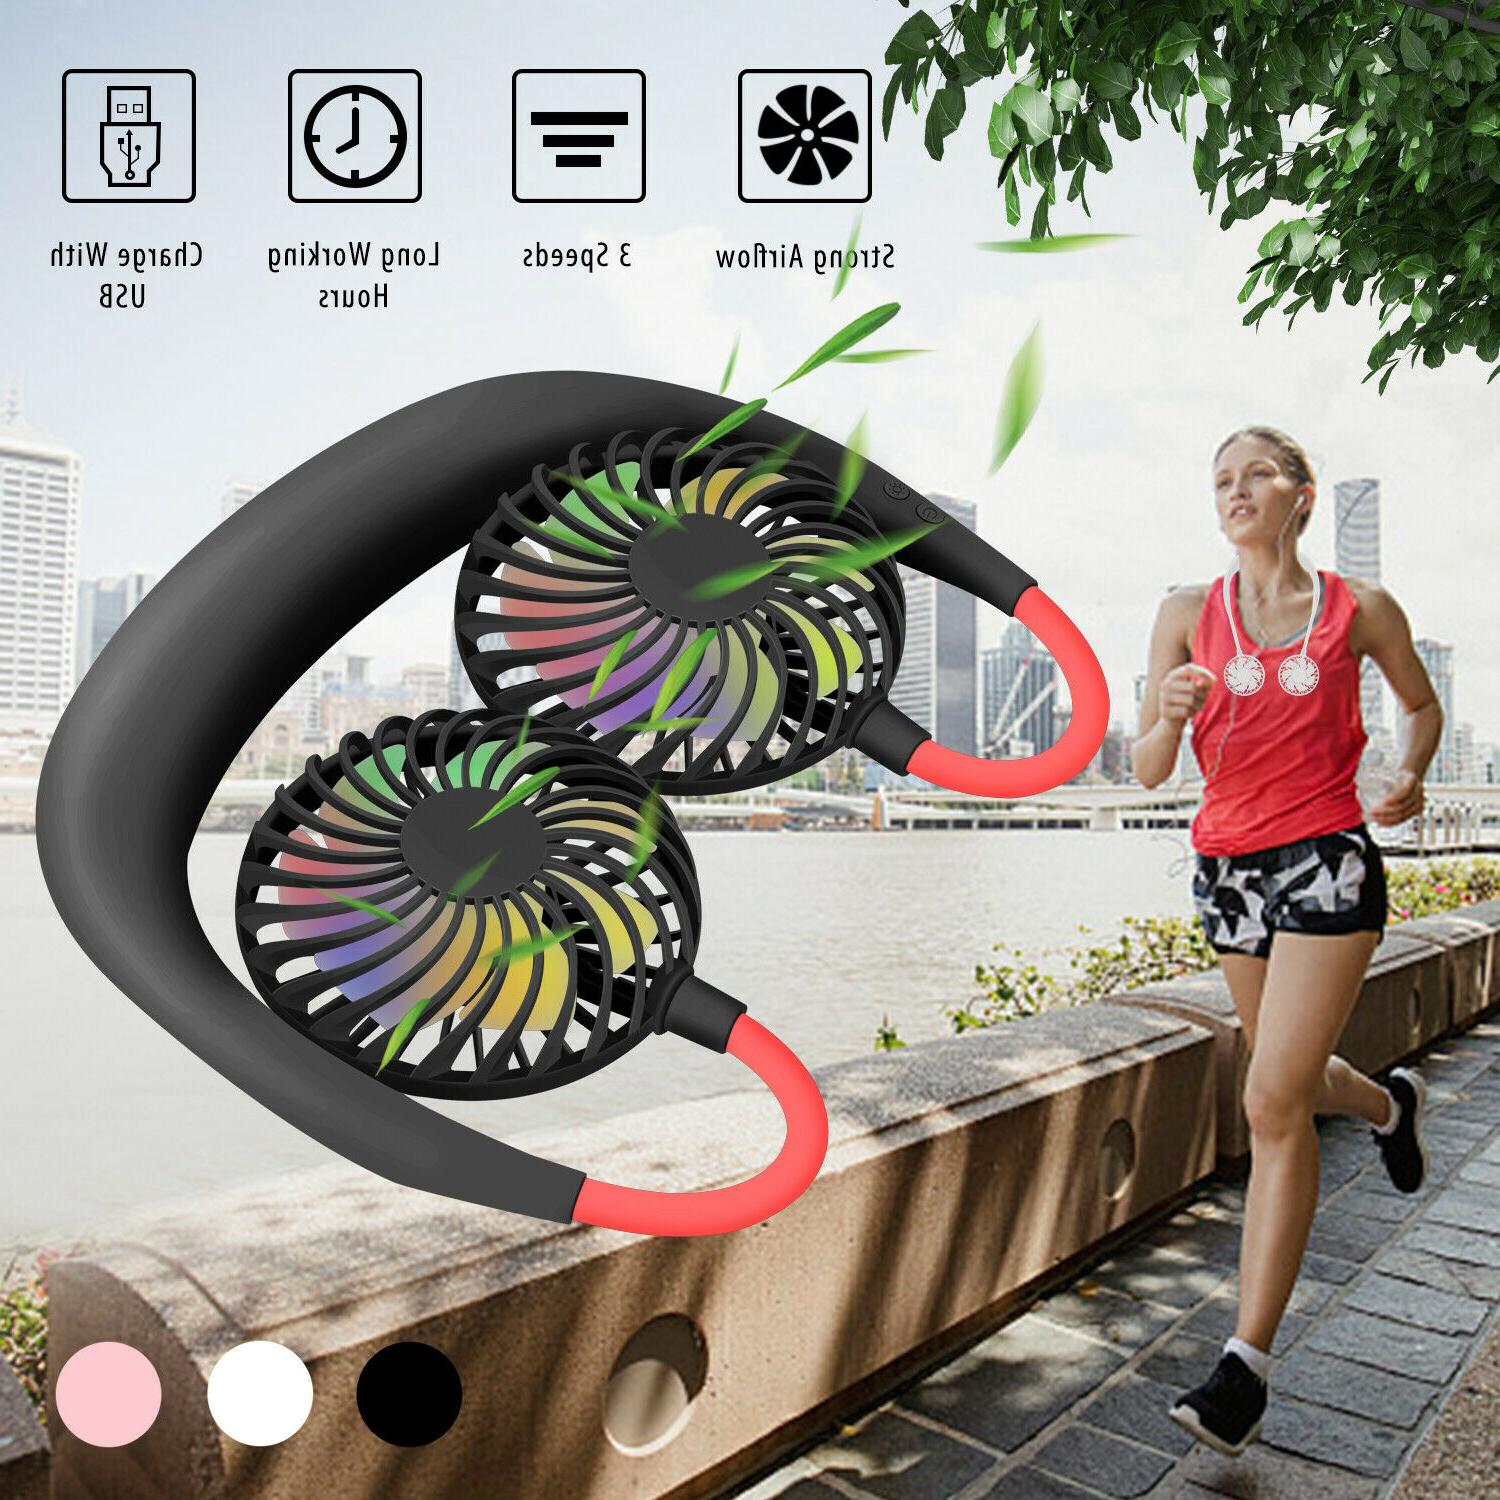 Sports LED Neckband Fan Wearable Portable Hand Free Personal